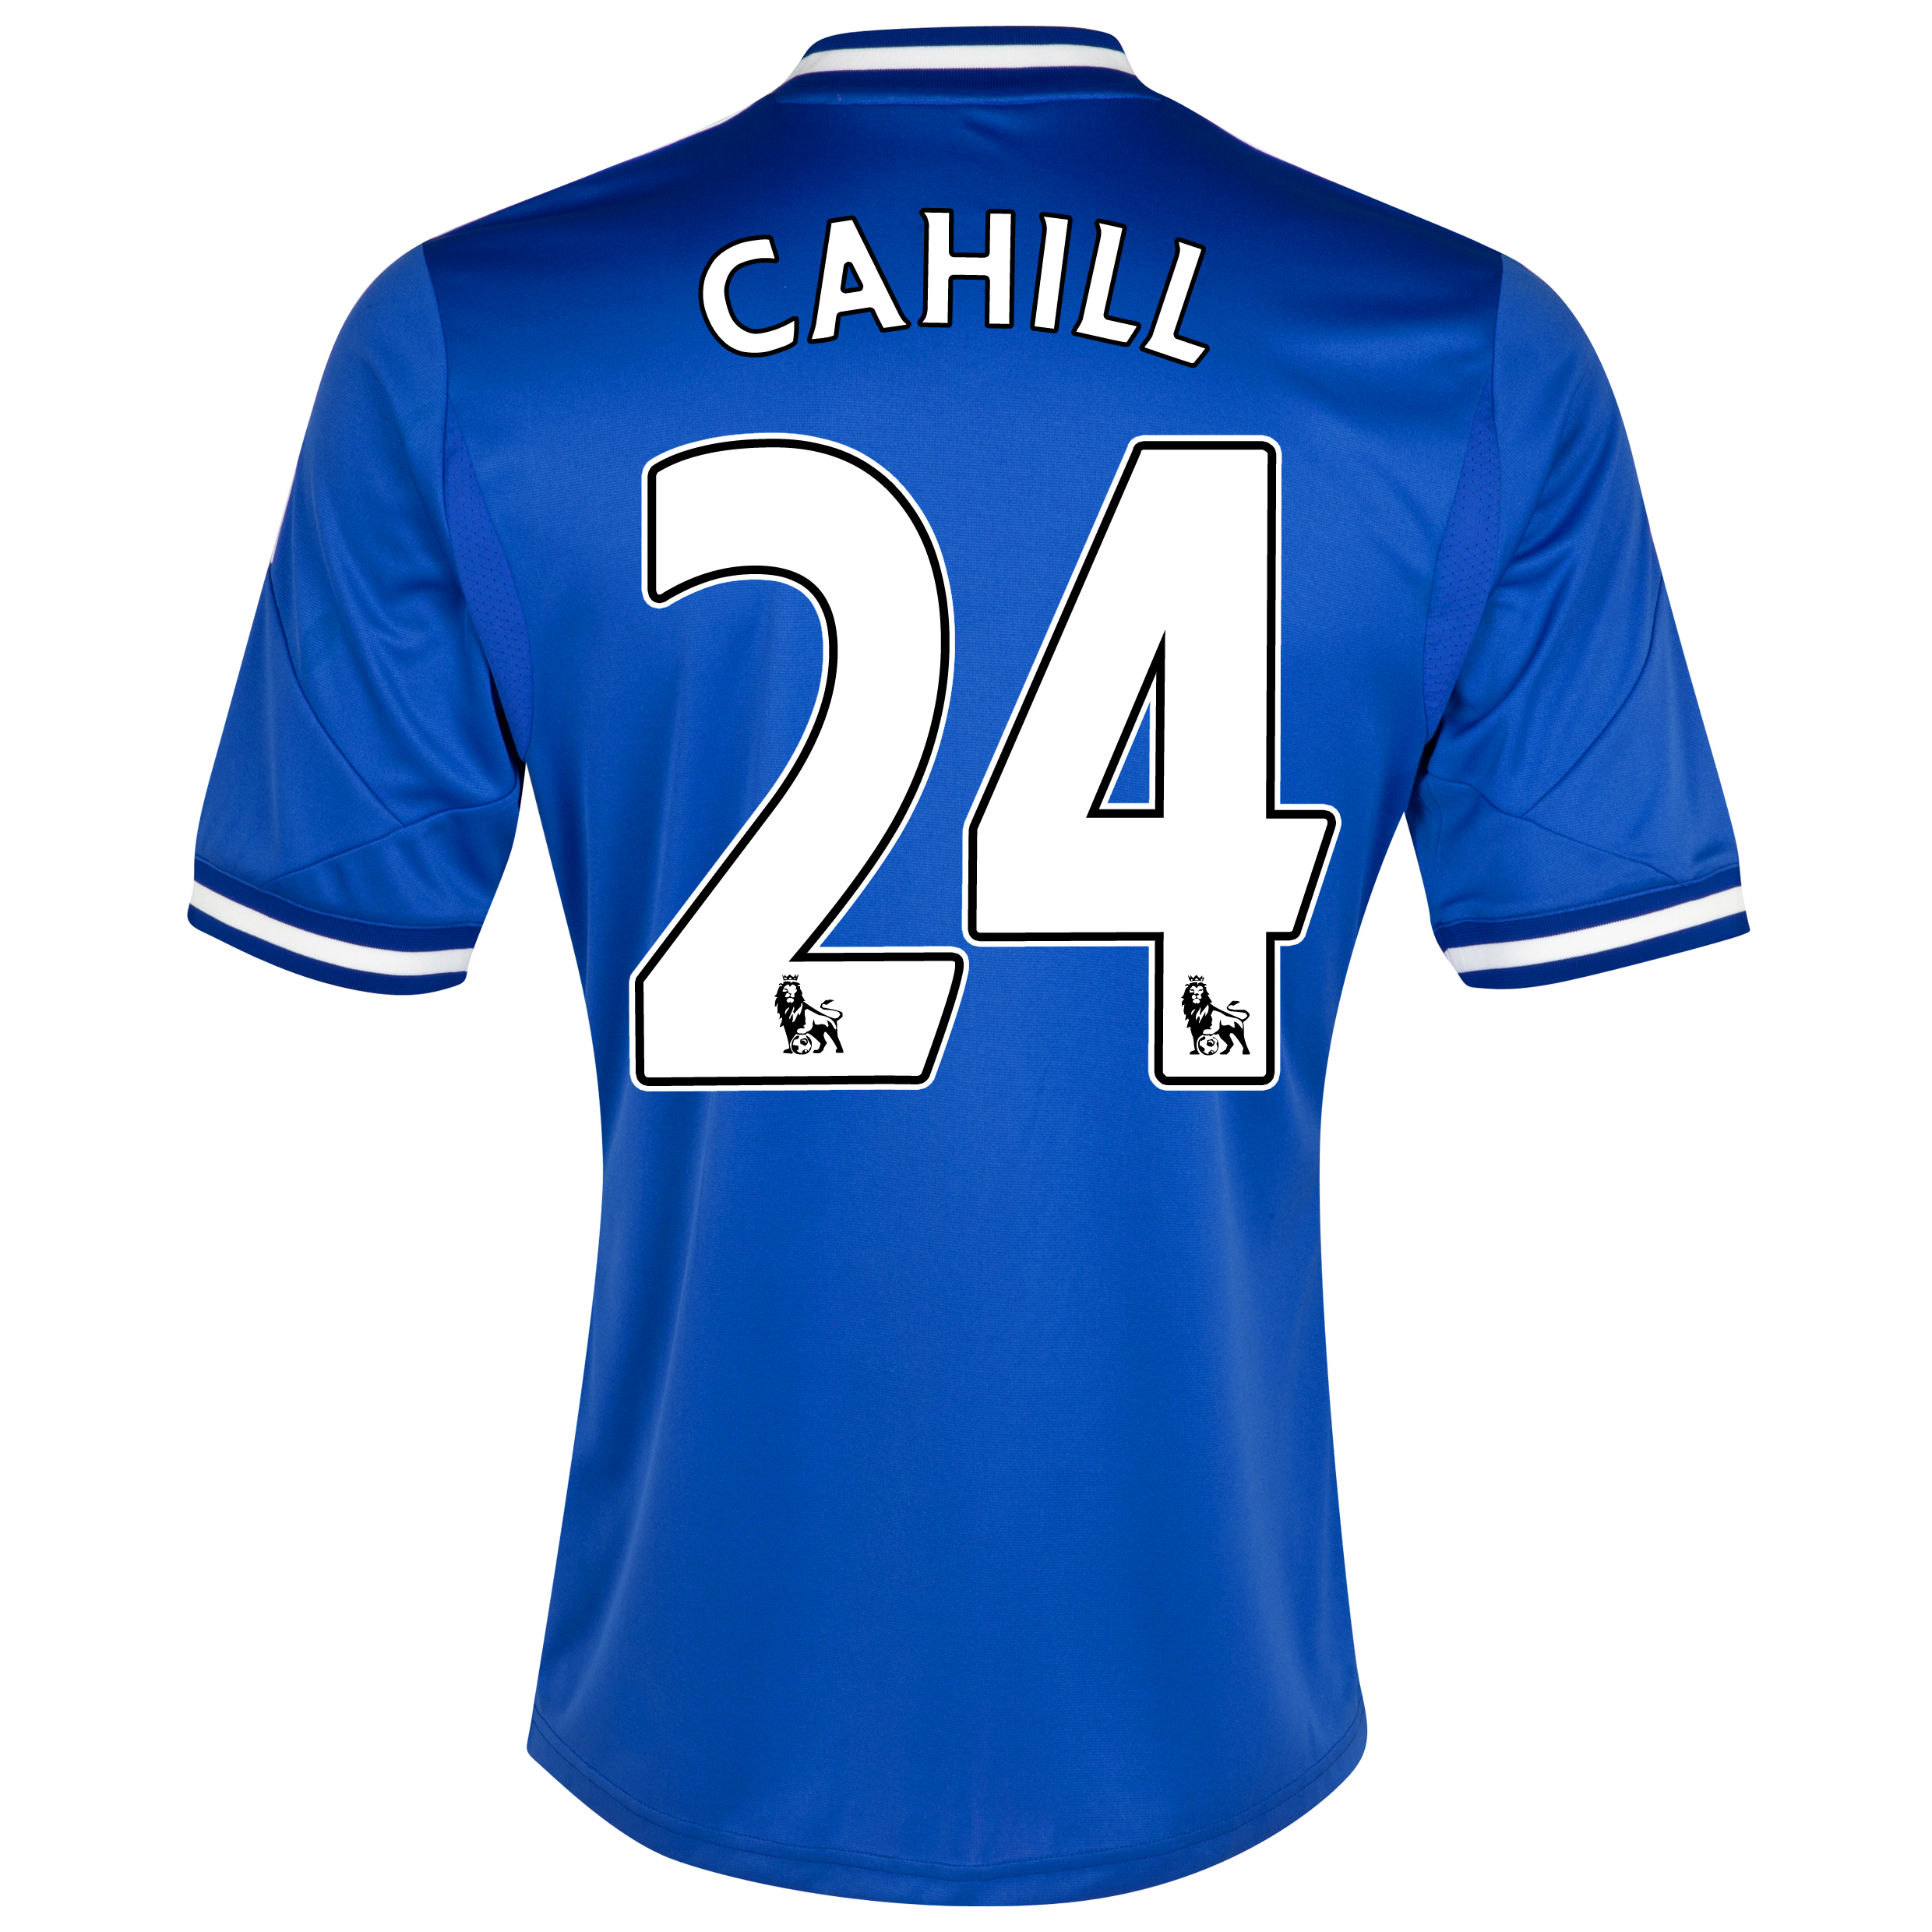 Chelsea Home Shirt 2013/14 - Outsize with Cahill 24 printing